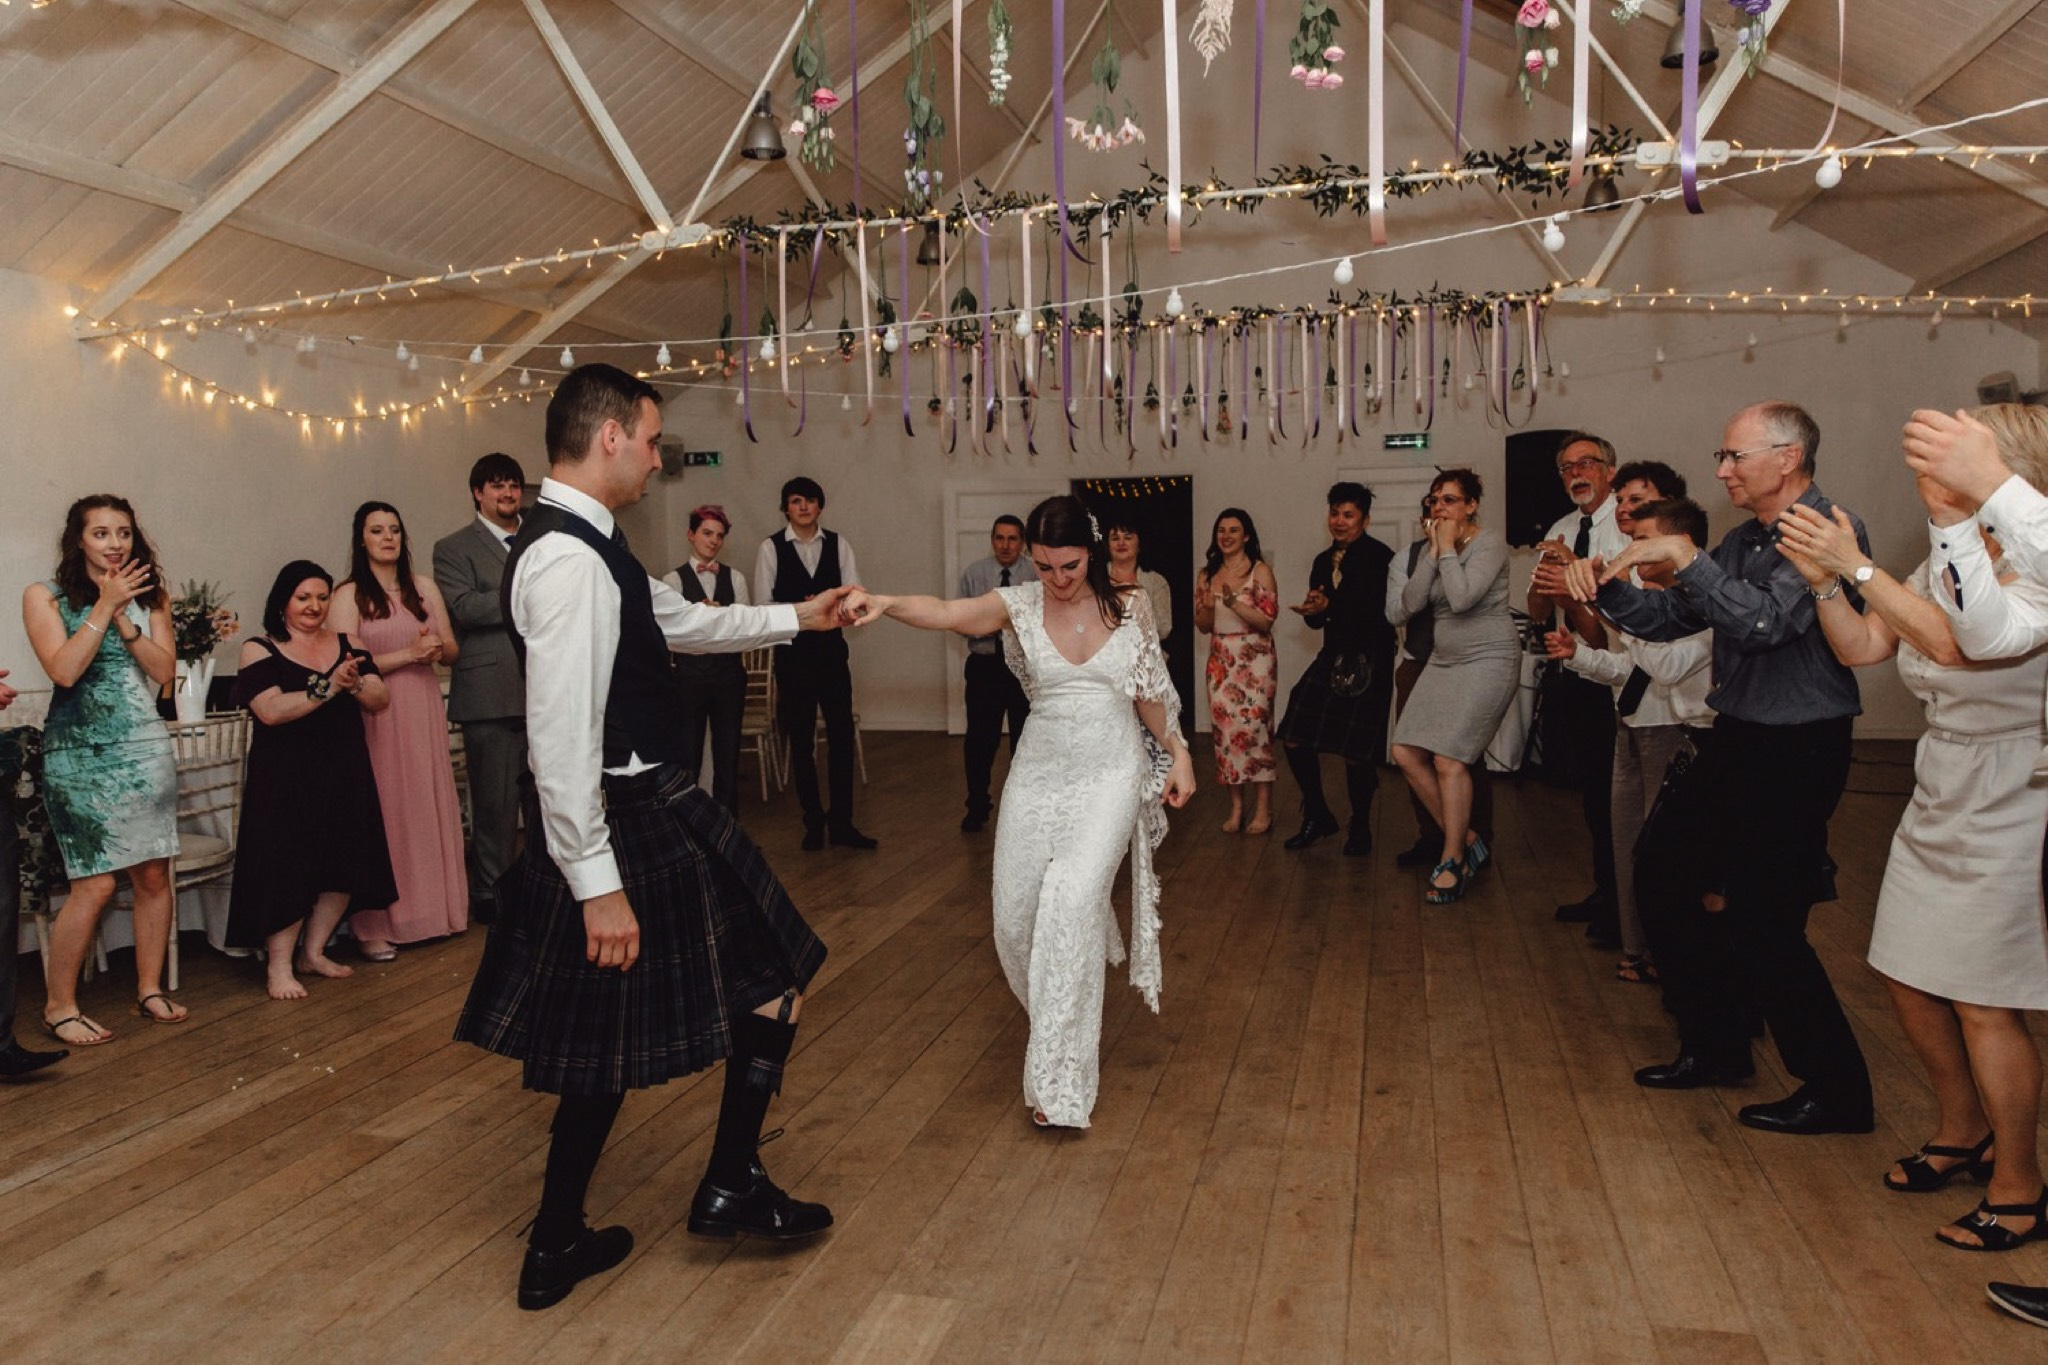 Scottish wedding at Crear Weddings in summer by Sunshine Coast and Maleny Wedding Photographer